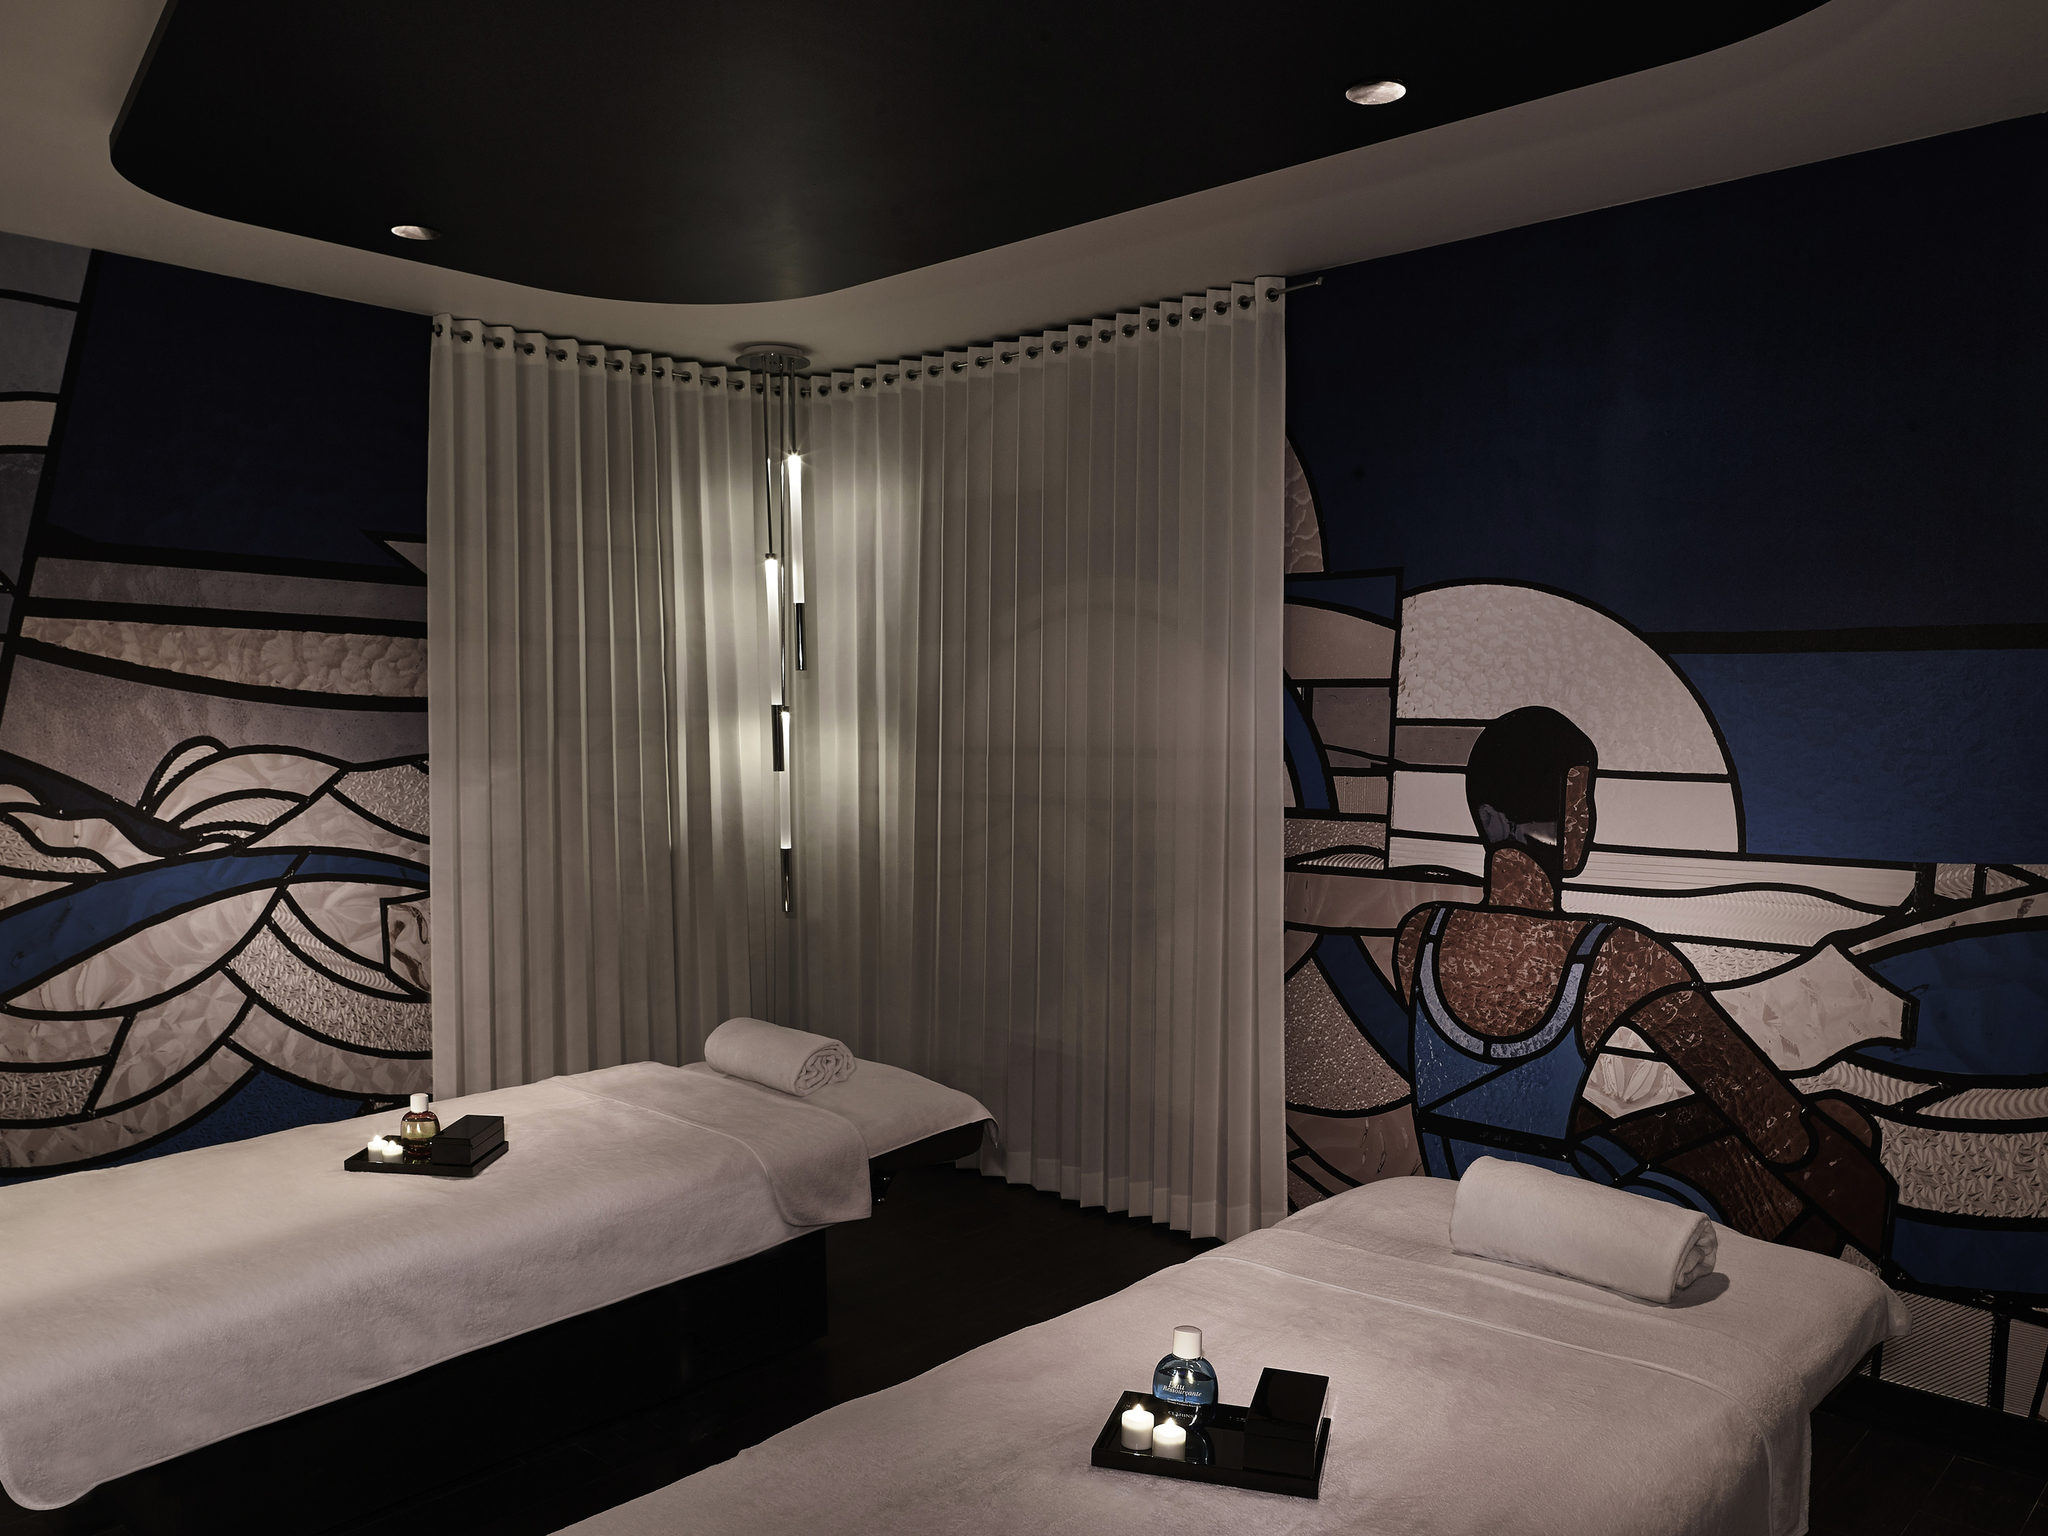 Image of Spa Hôtel Molitor Paris - MGallery by Sofitel, 1929, Member of Historic Hotels Worldwide, in Paris, France, Spa